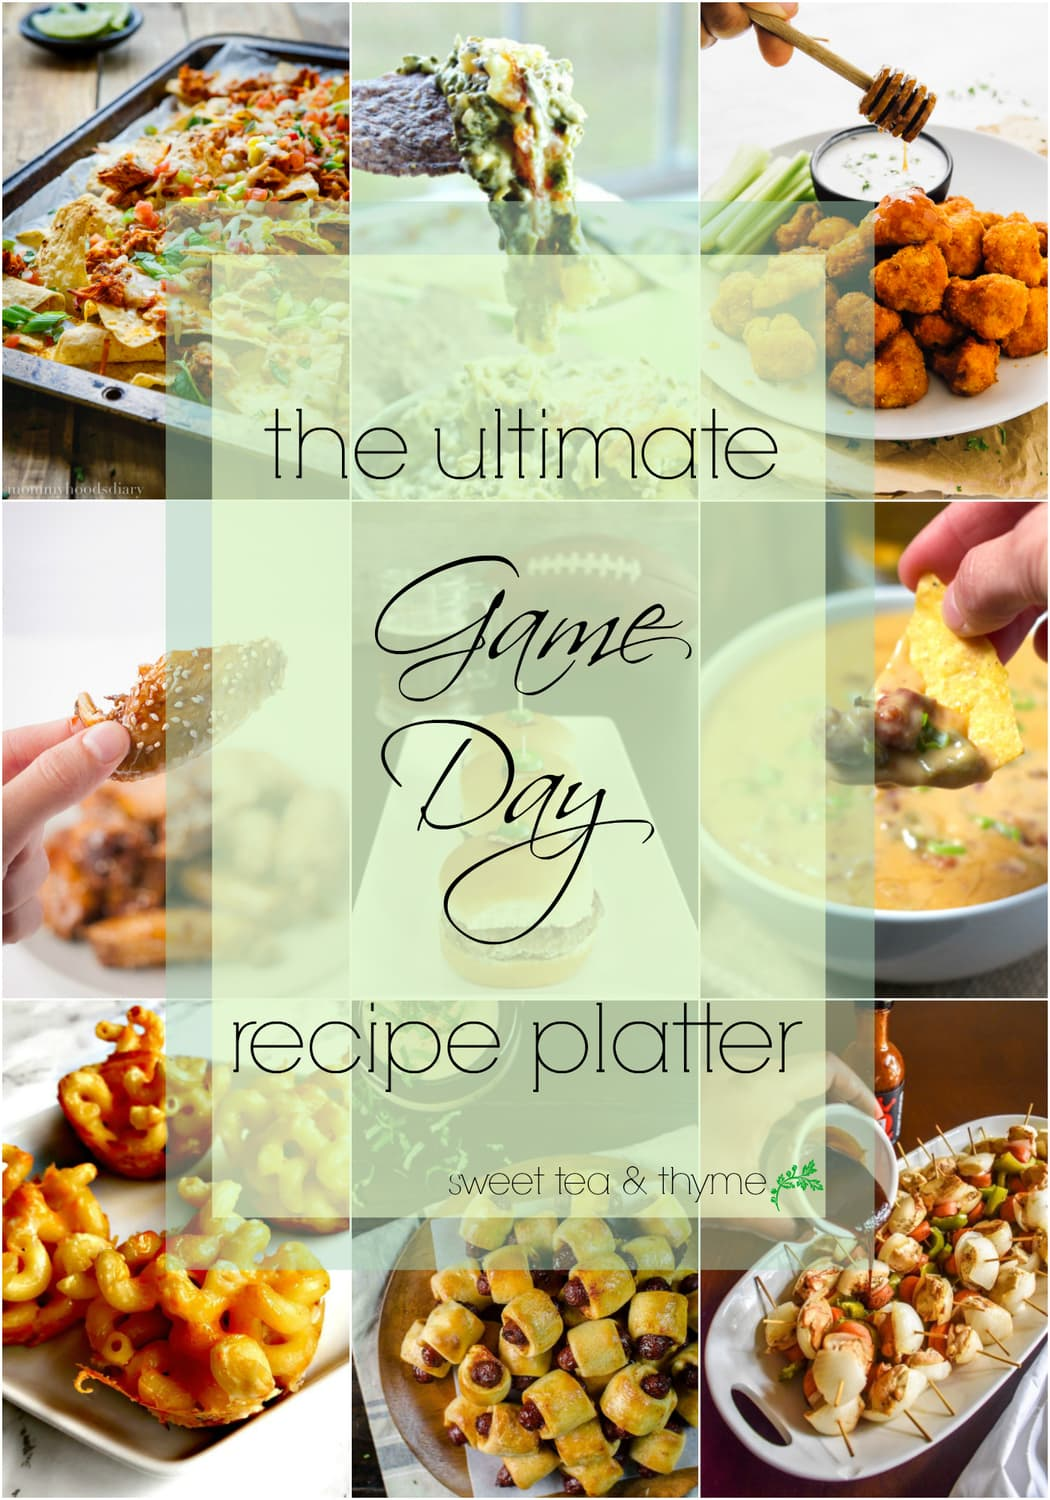 The Ultimate Game Day Platter -Recipe Round Up!